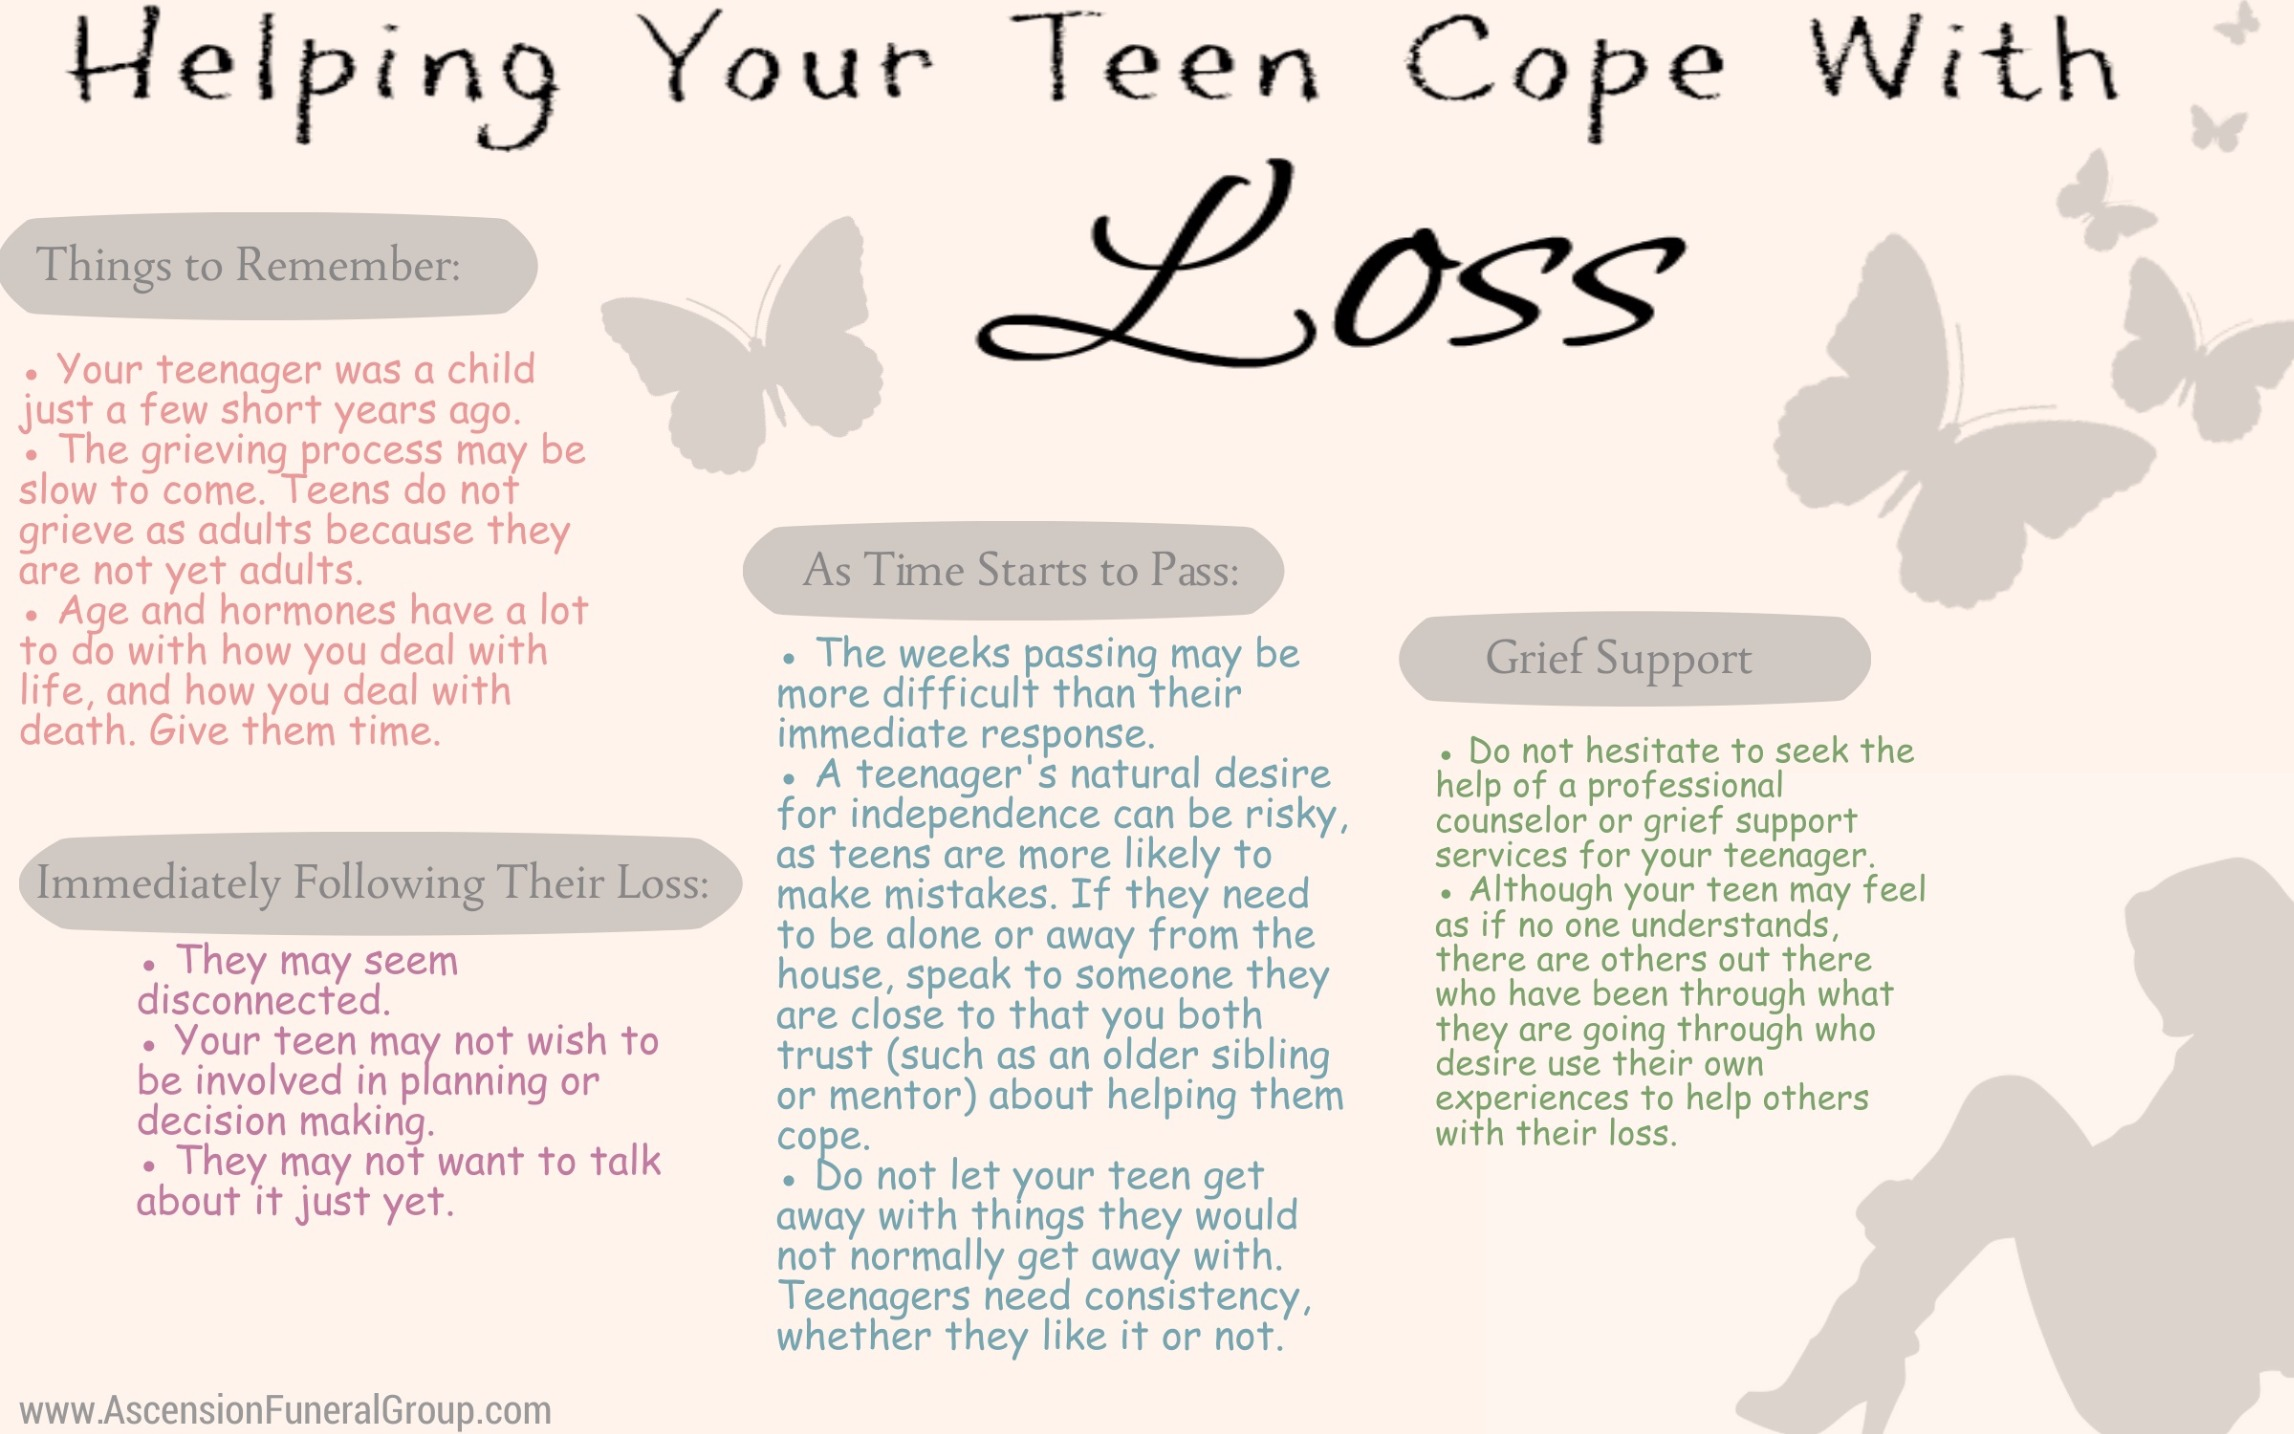 helping teens cope - ascension funeral group